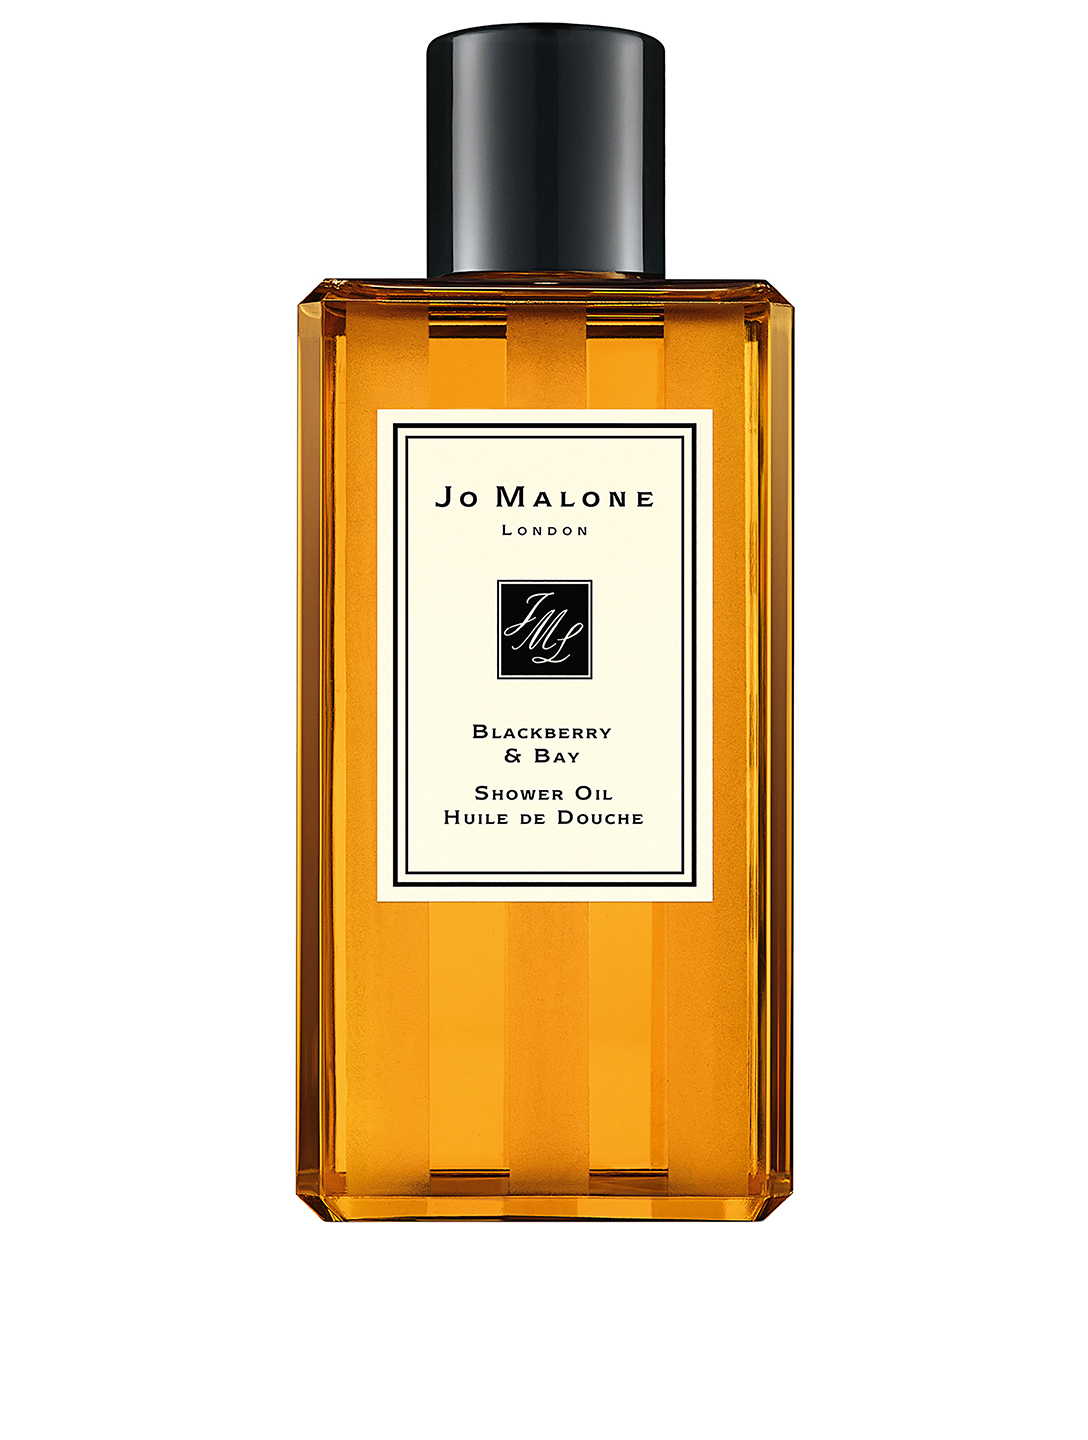 JO MALONE LONDON Huile de douche Blackberry & Bay Beauté